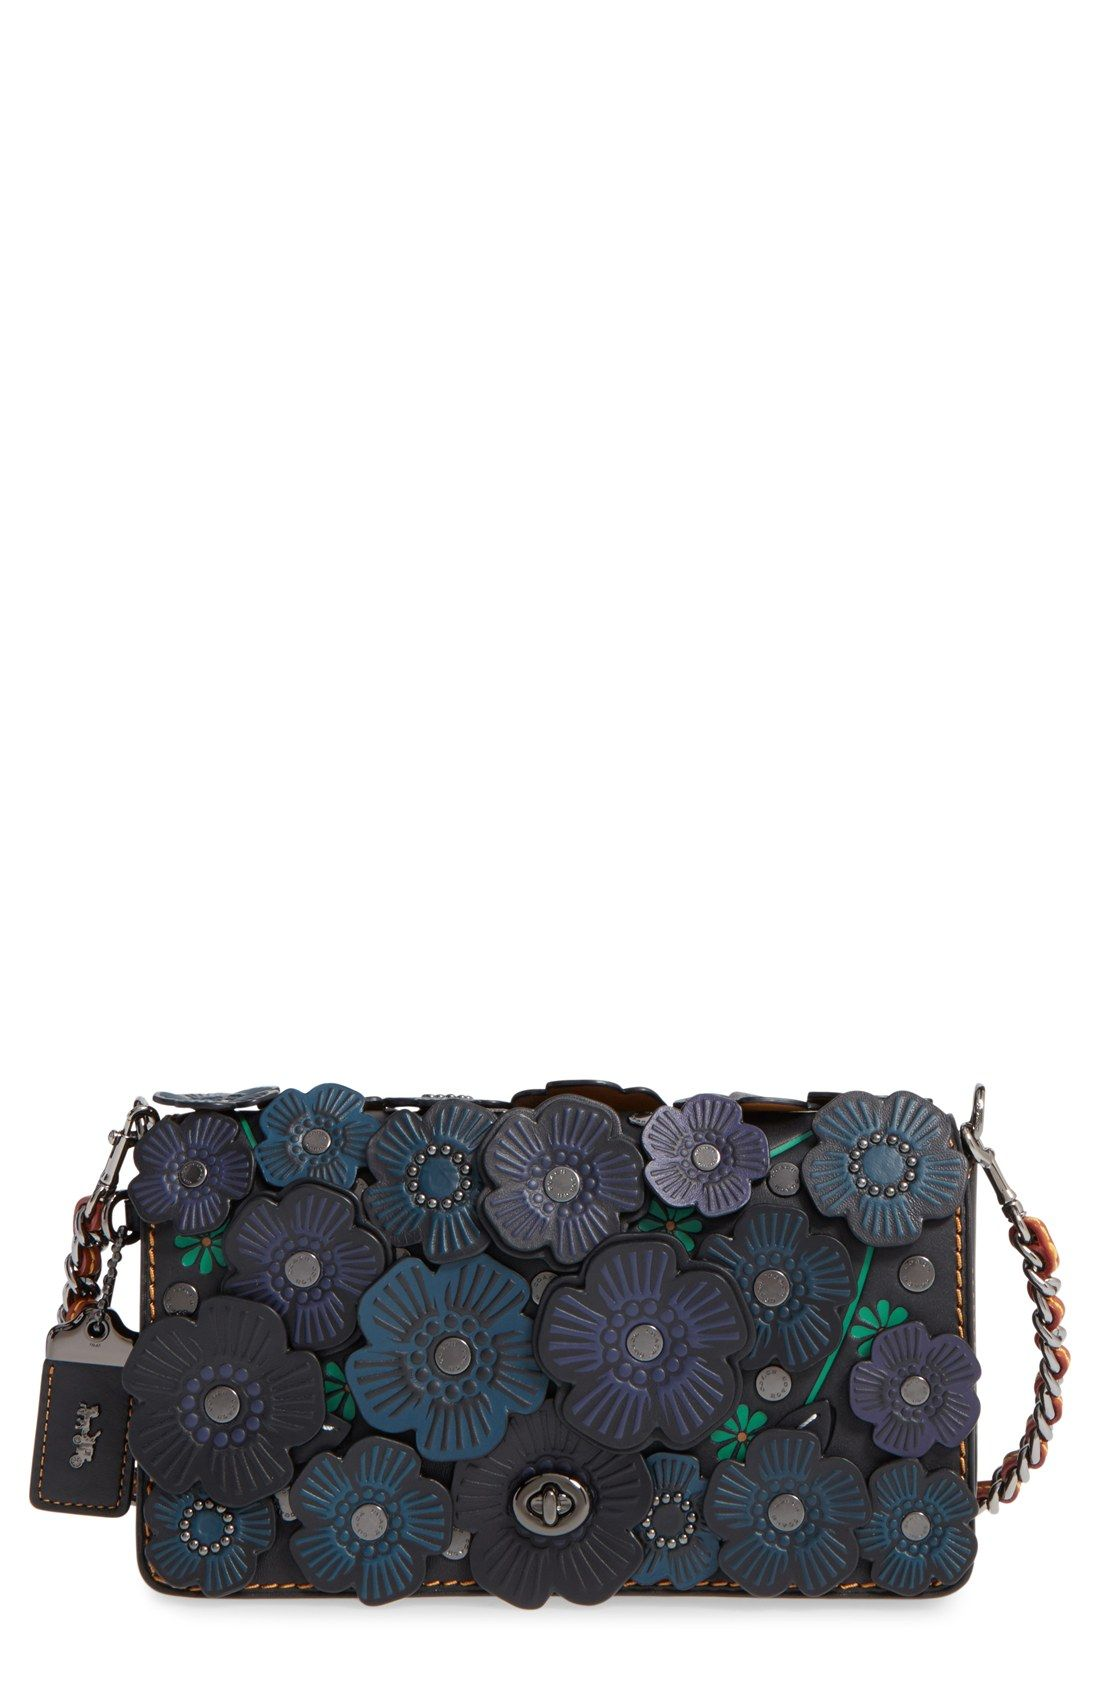 COACH 1941  Dinky  Flower Appliqué Leather Saddle Bag  87785011ad1ab